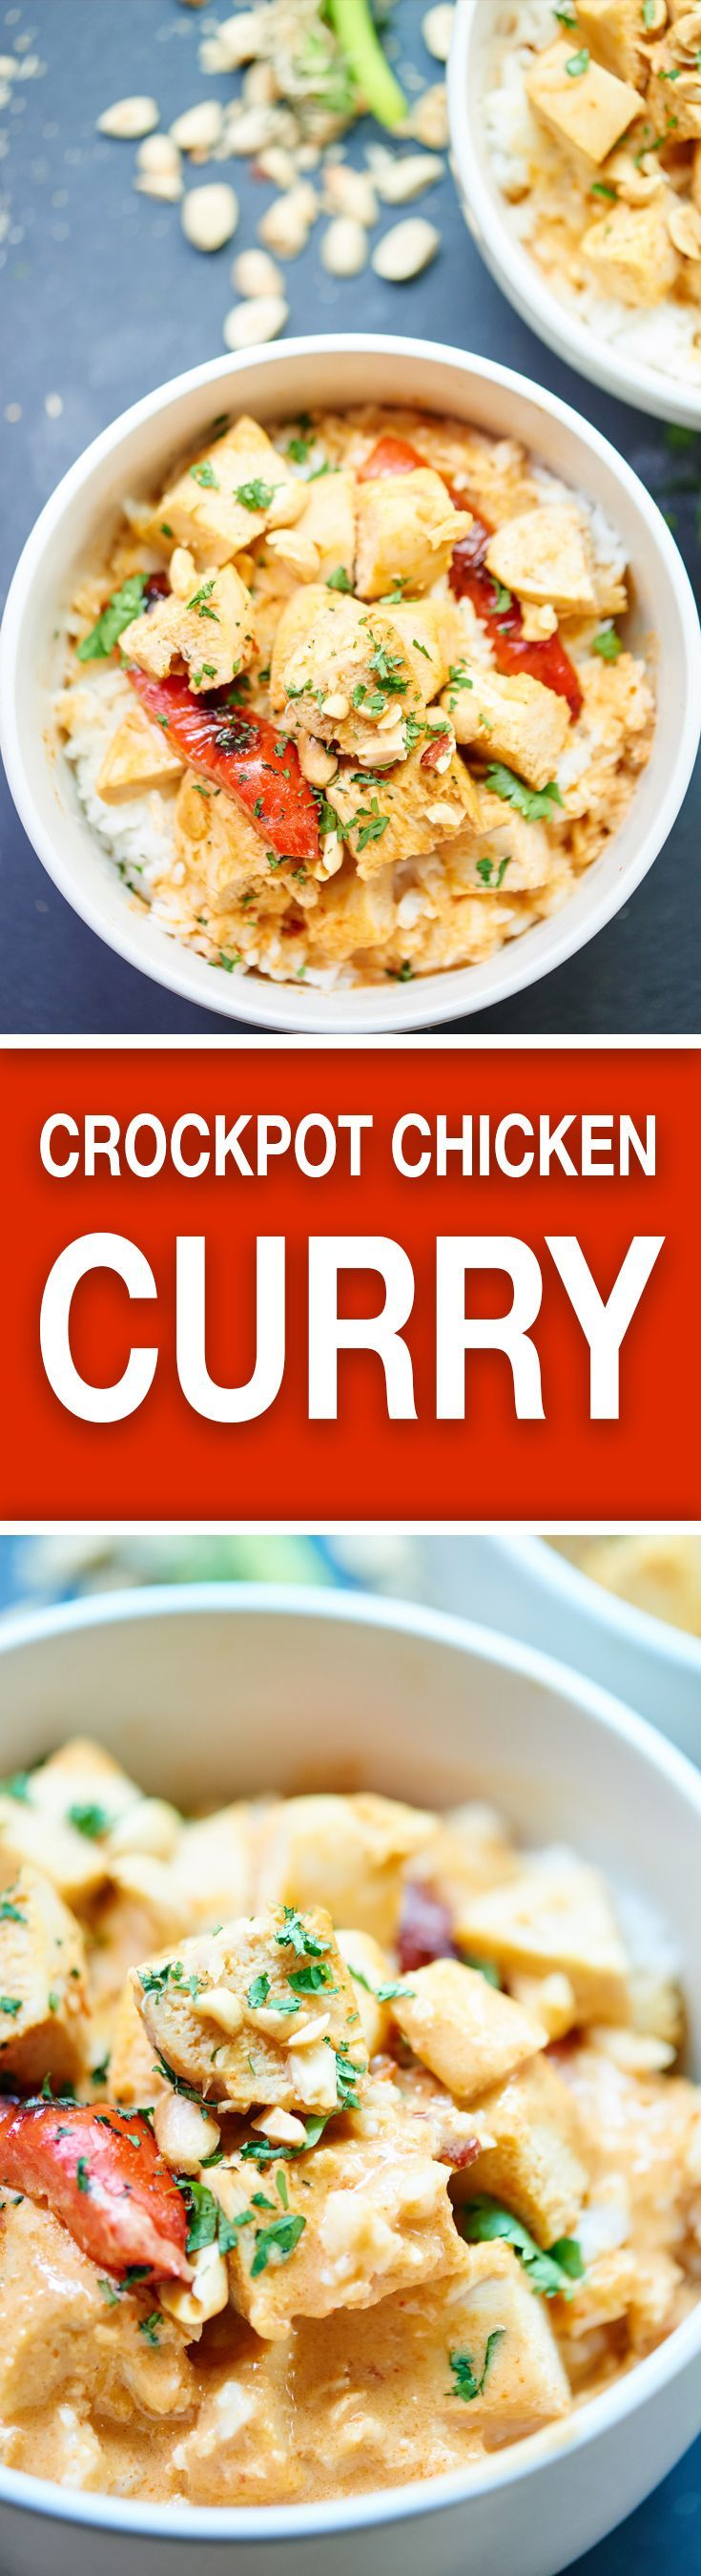 This Crockpot Thai Chicken Curry is healthy, tasty, & only takes one dish & five minutes to put together! 3 hours of cook time & you've got one yummy meal! showmetheyummy.com #crockpot #slowcooker